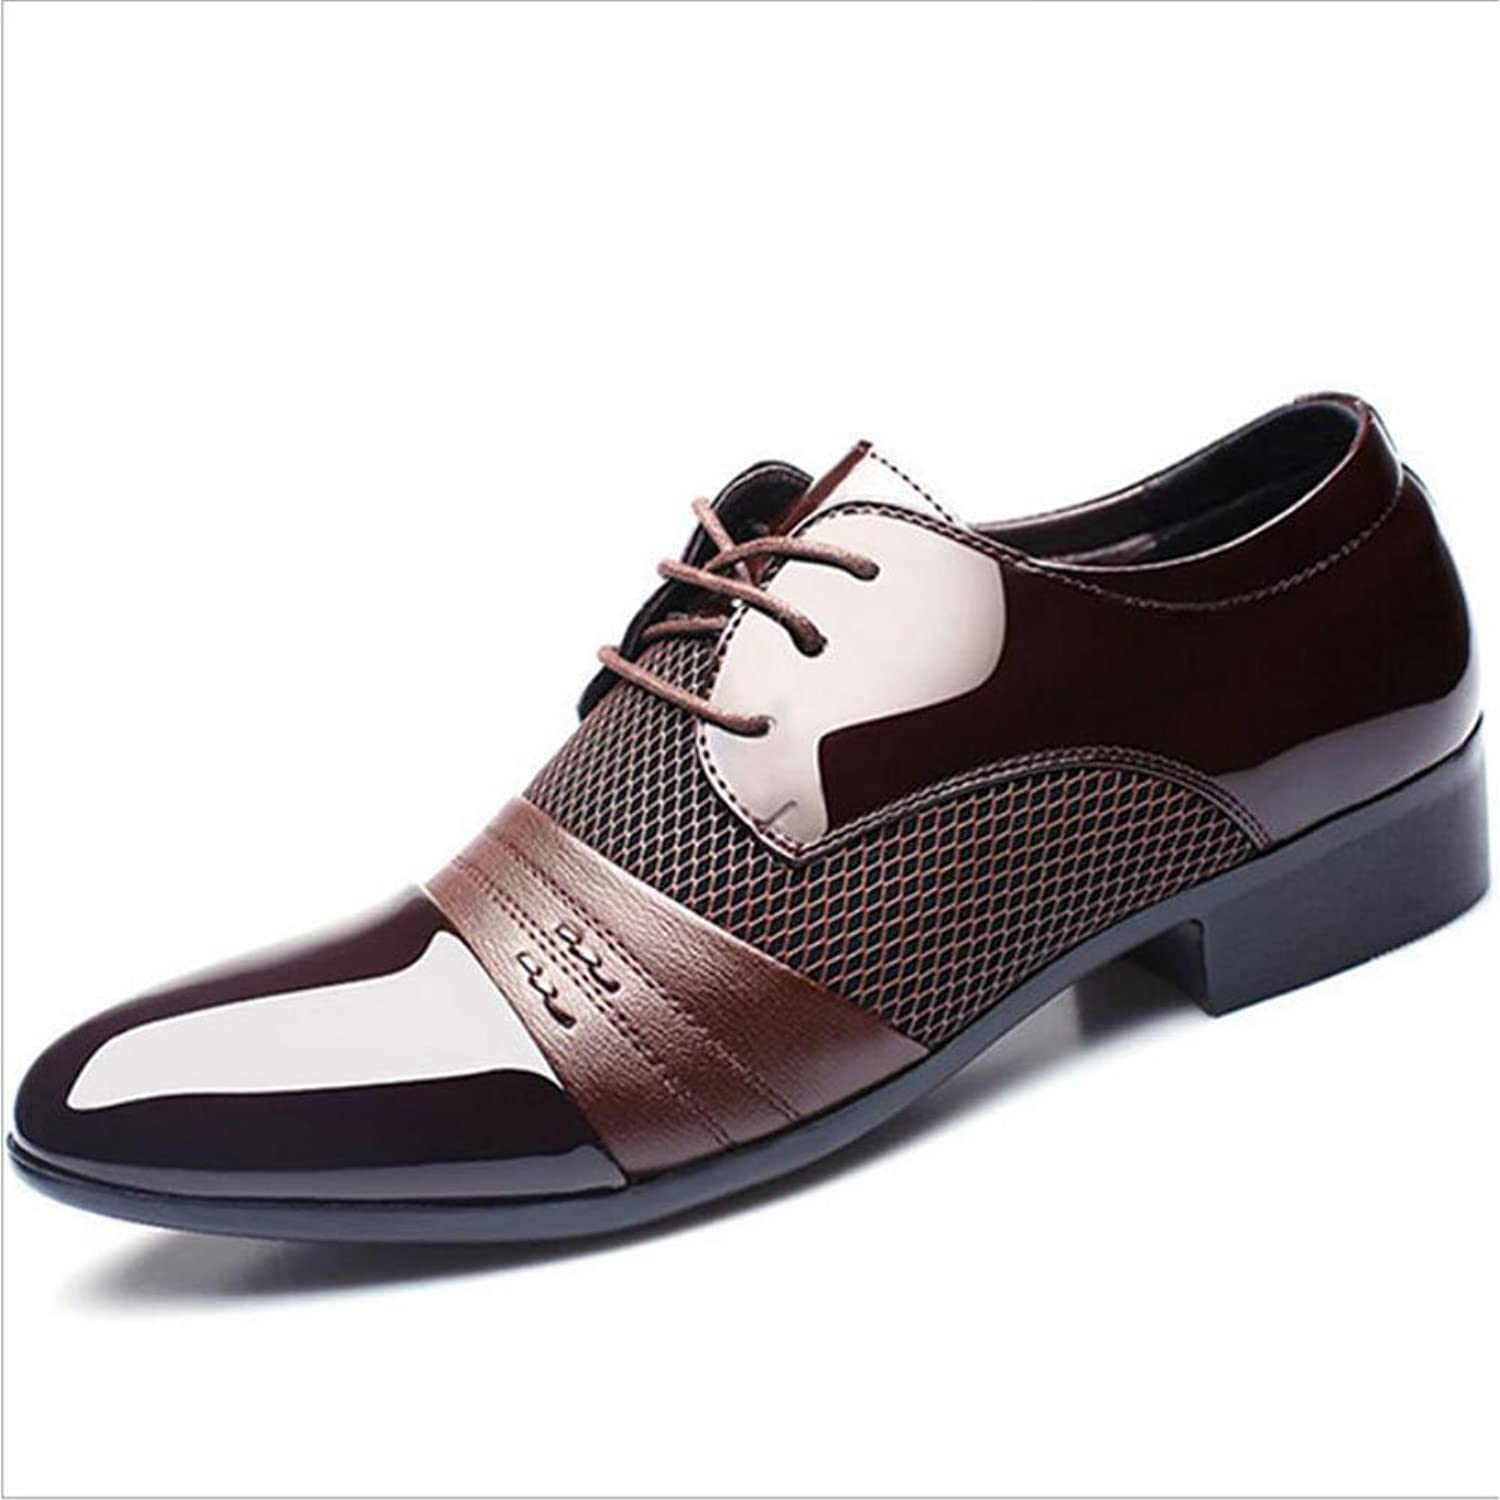 Gfp Men's Leather shoes Men's Business Leather shoes (Polyurethane) Spring Fall Formal shoes shoes Black Brown Wedding Party & Evening